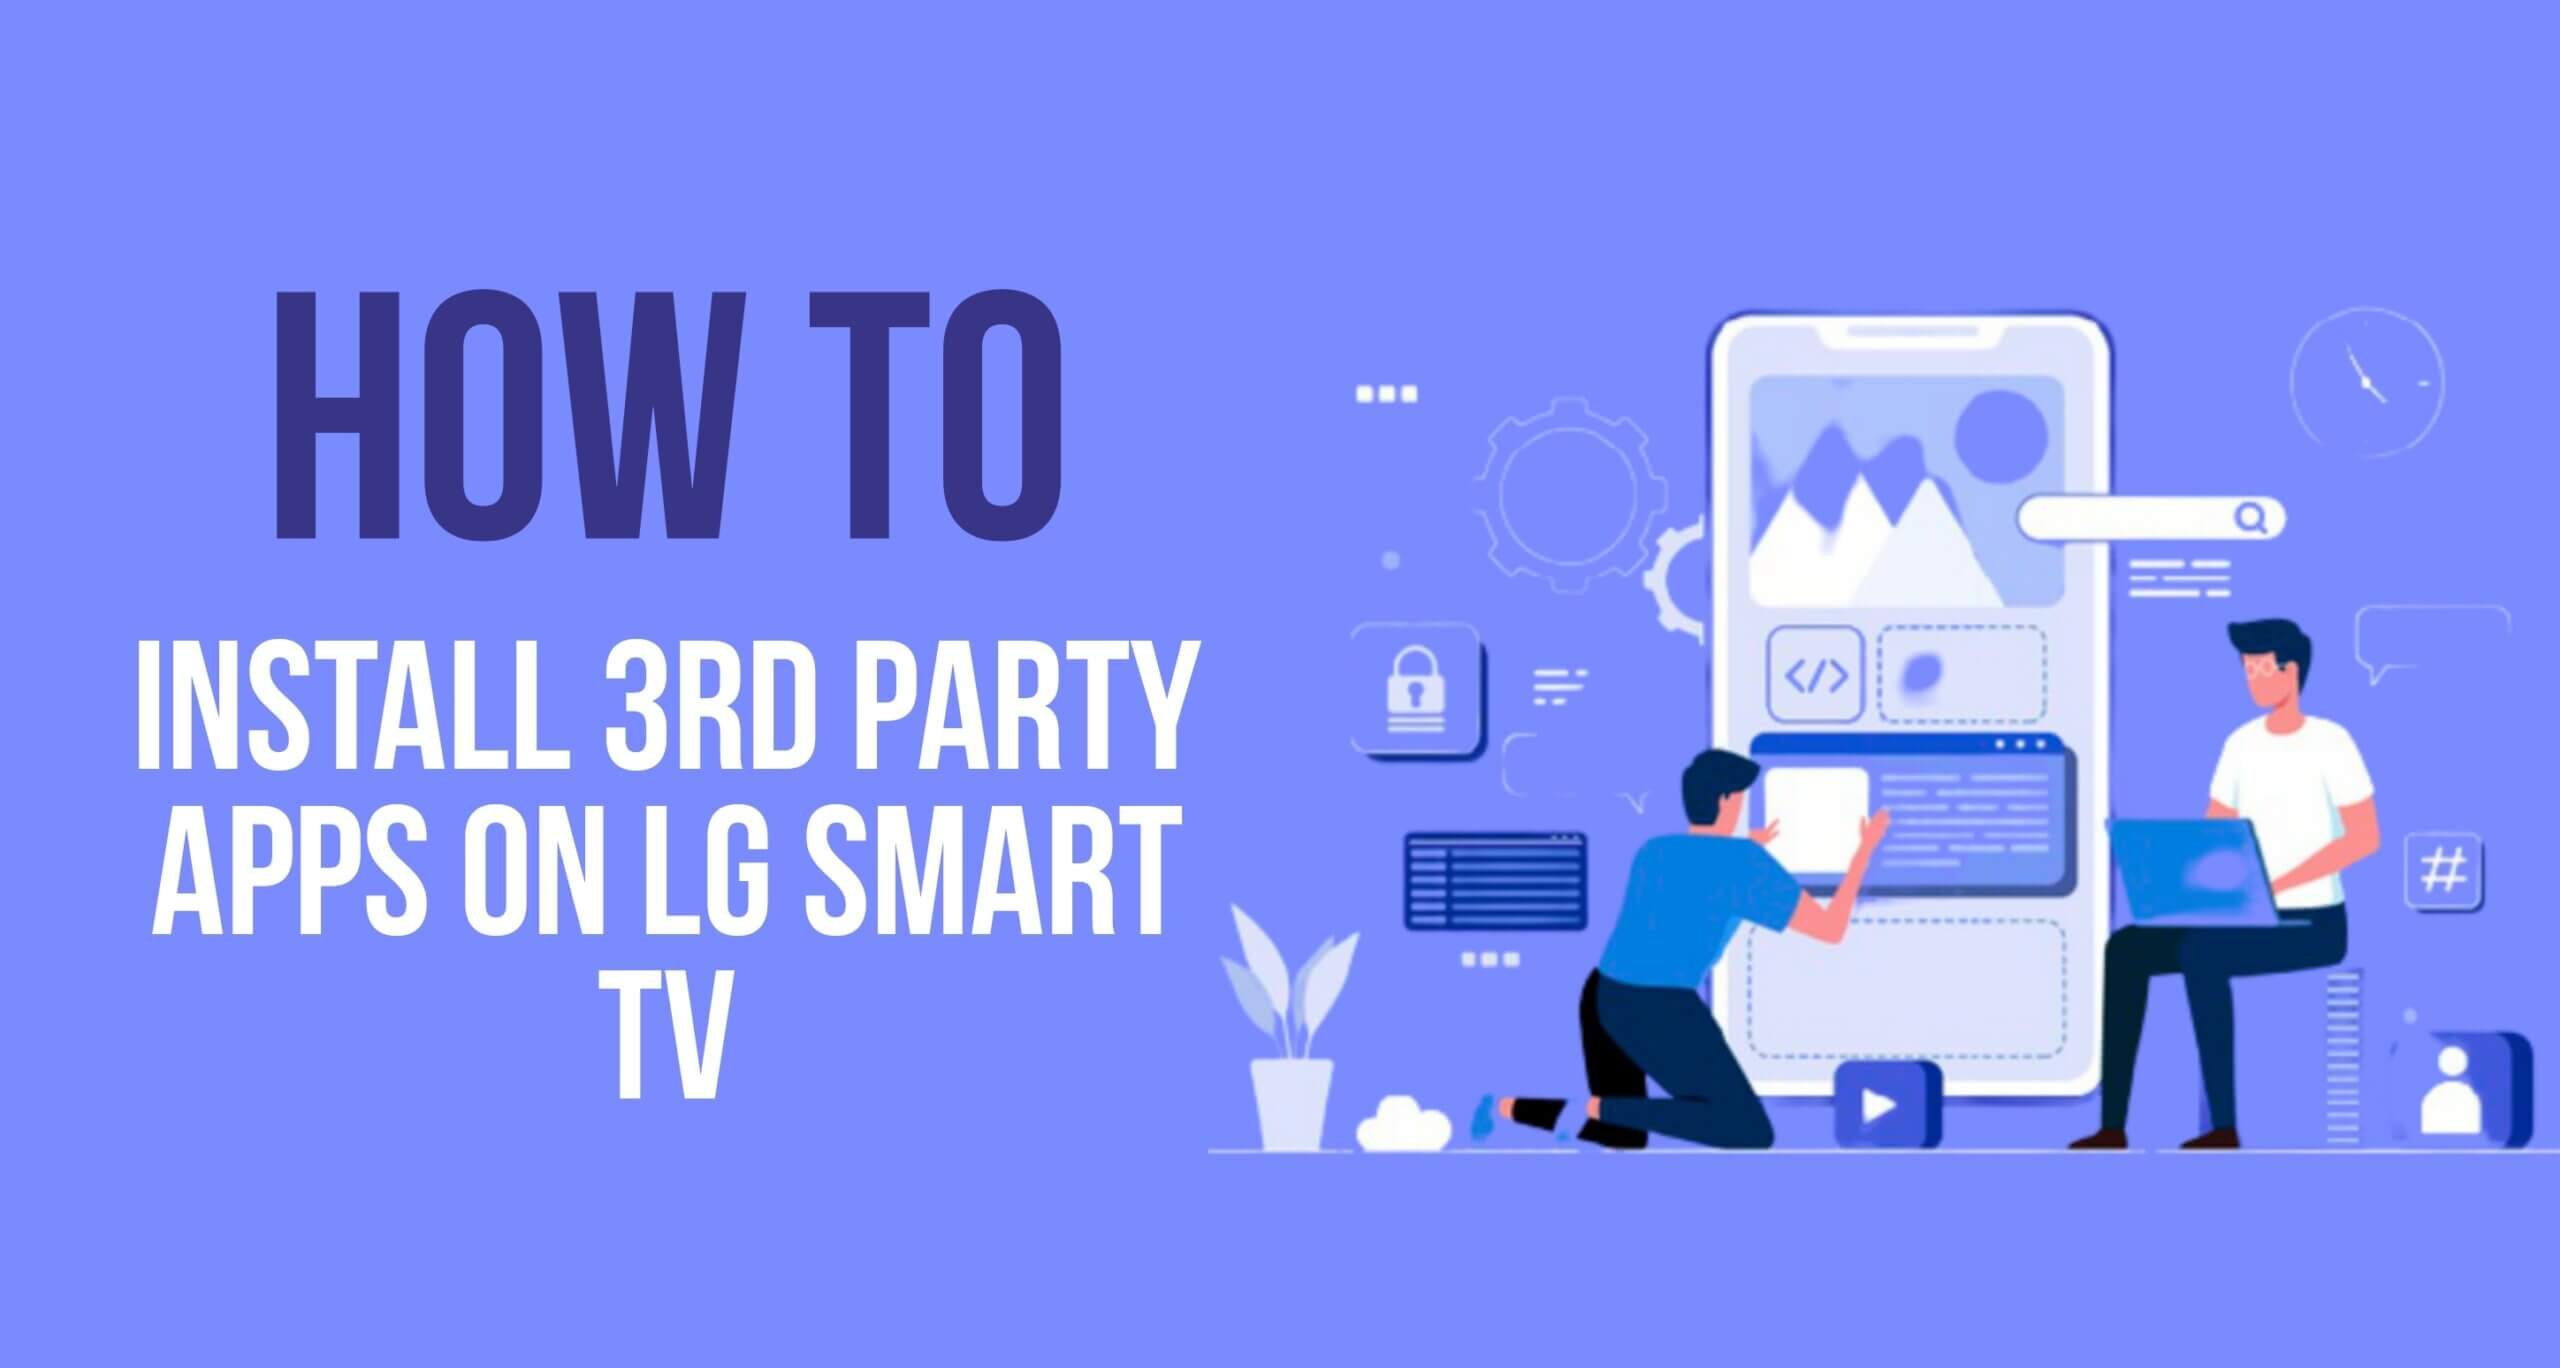 How to install 8rd party apps on LG smart tv - khabri